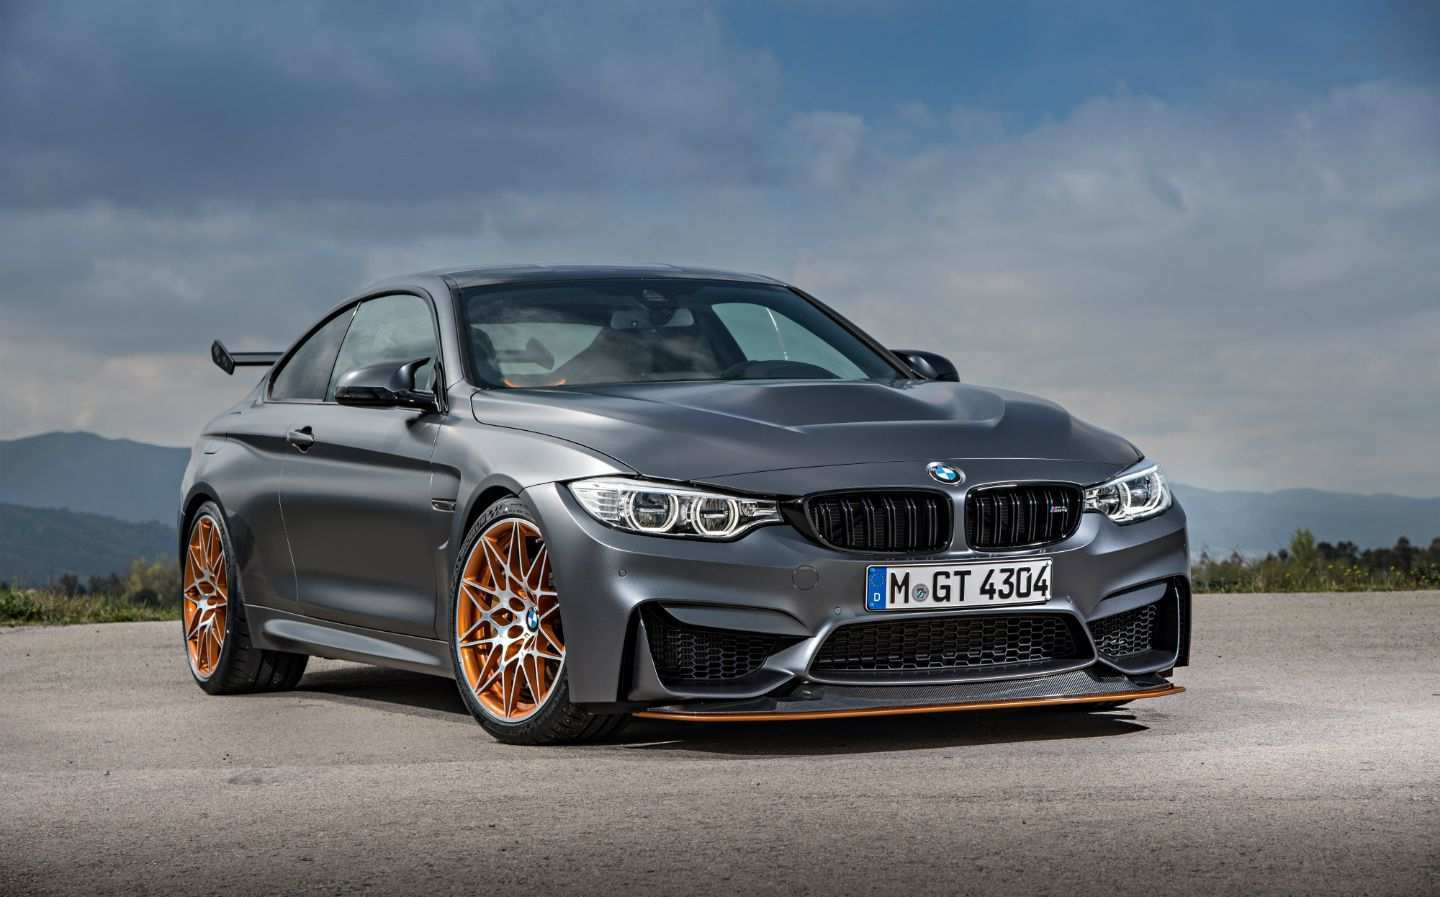 16 Best Review 2020 BMW M4 Gts Ratings for 2020 BMW M4 Gts